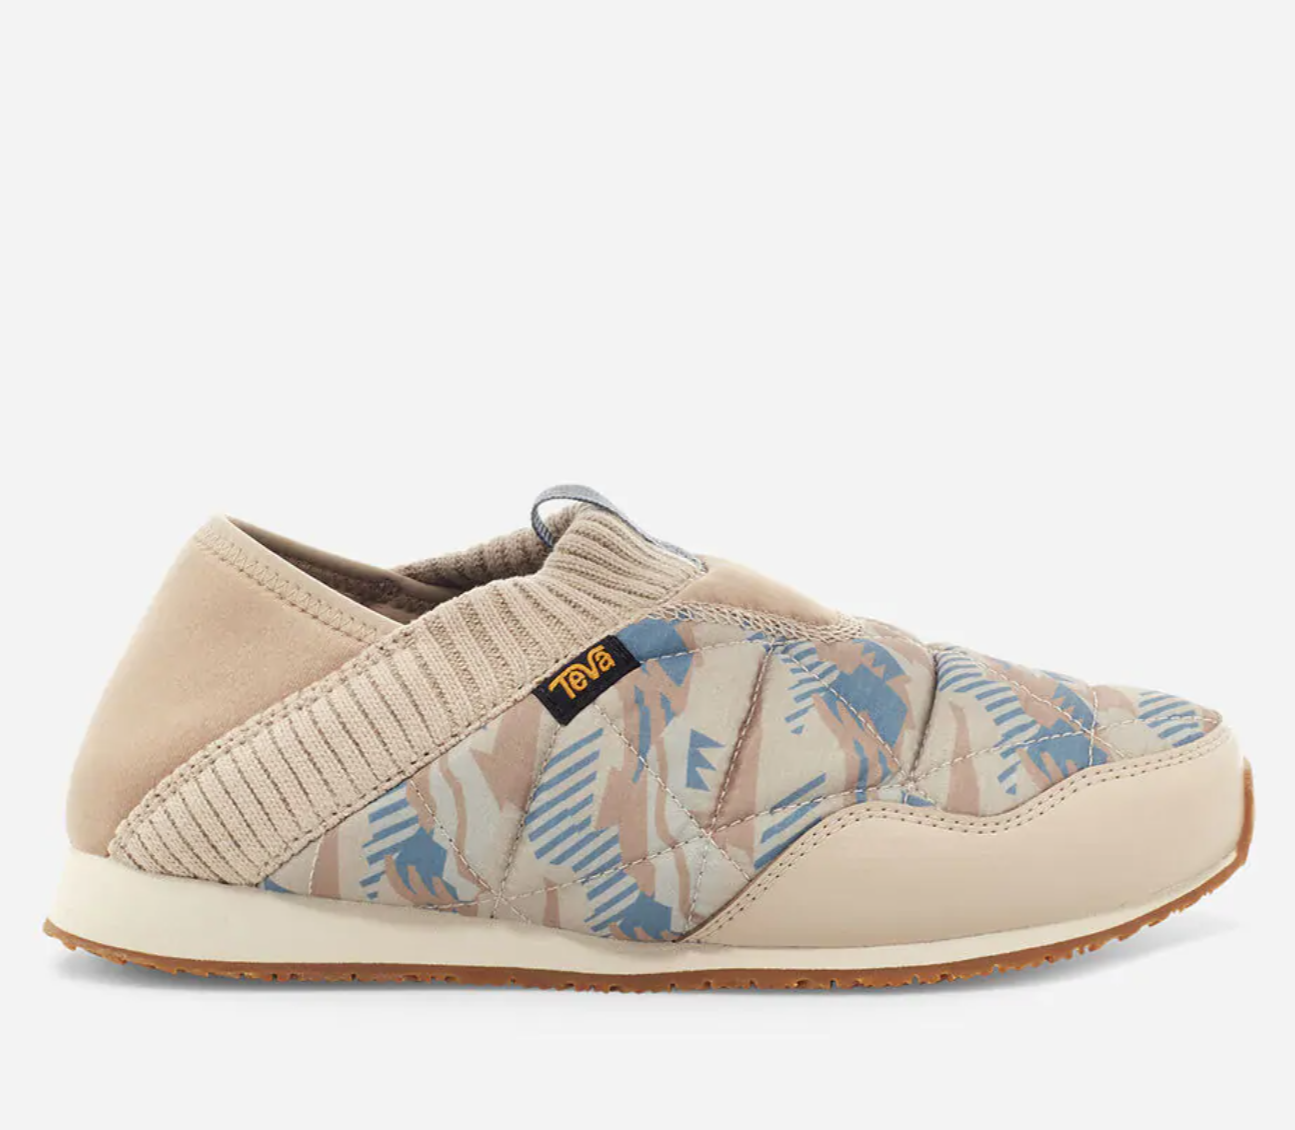 Teva: 10% off + Extra 10% off sitewide